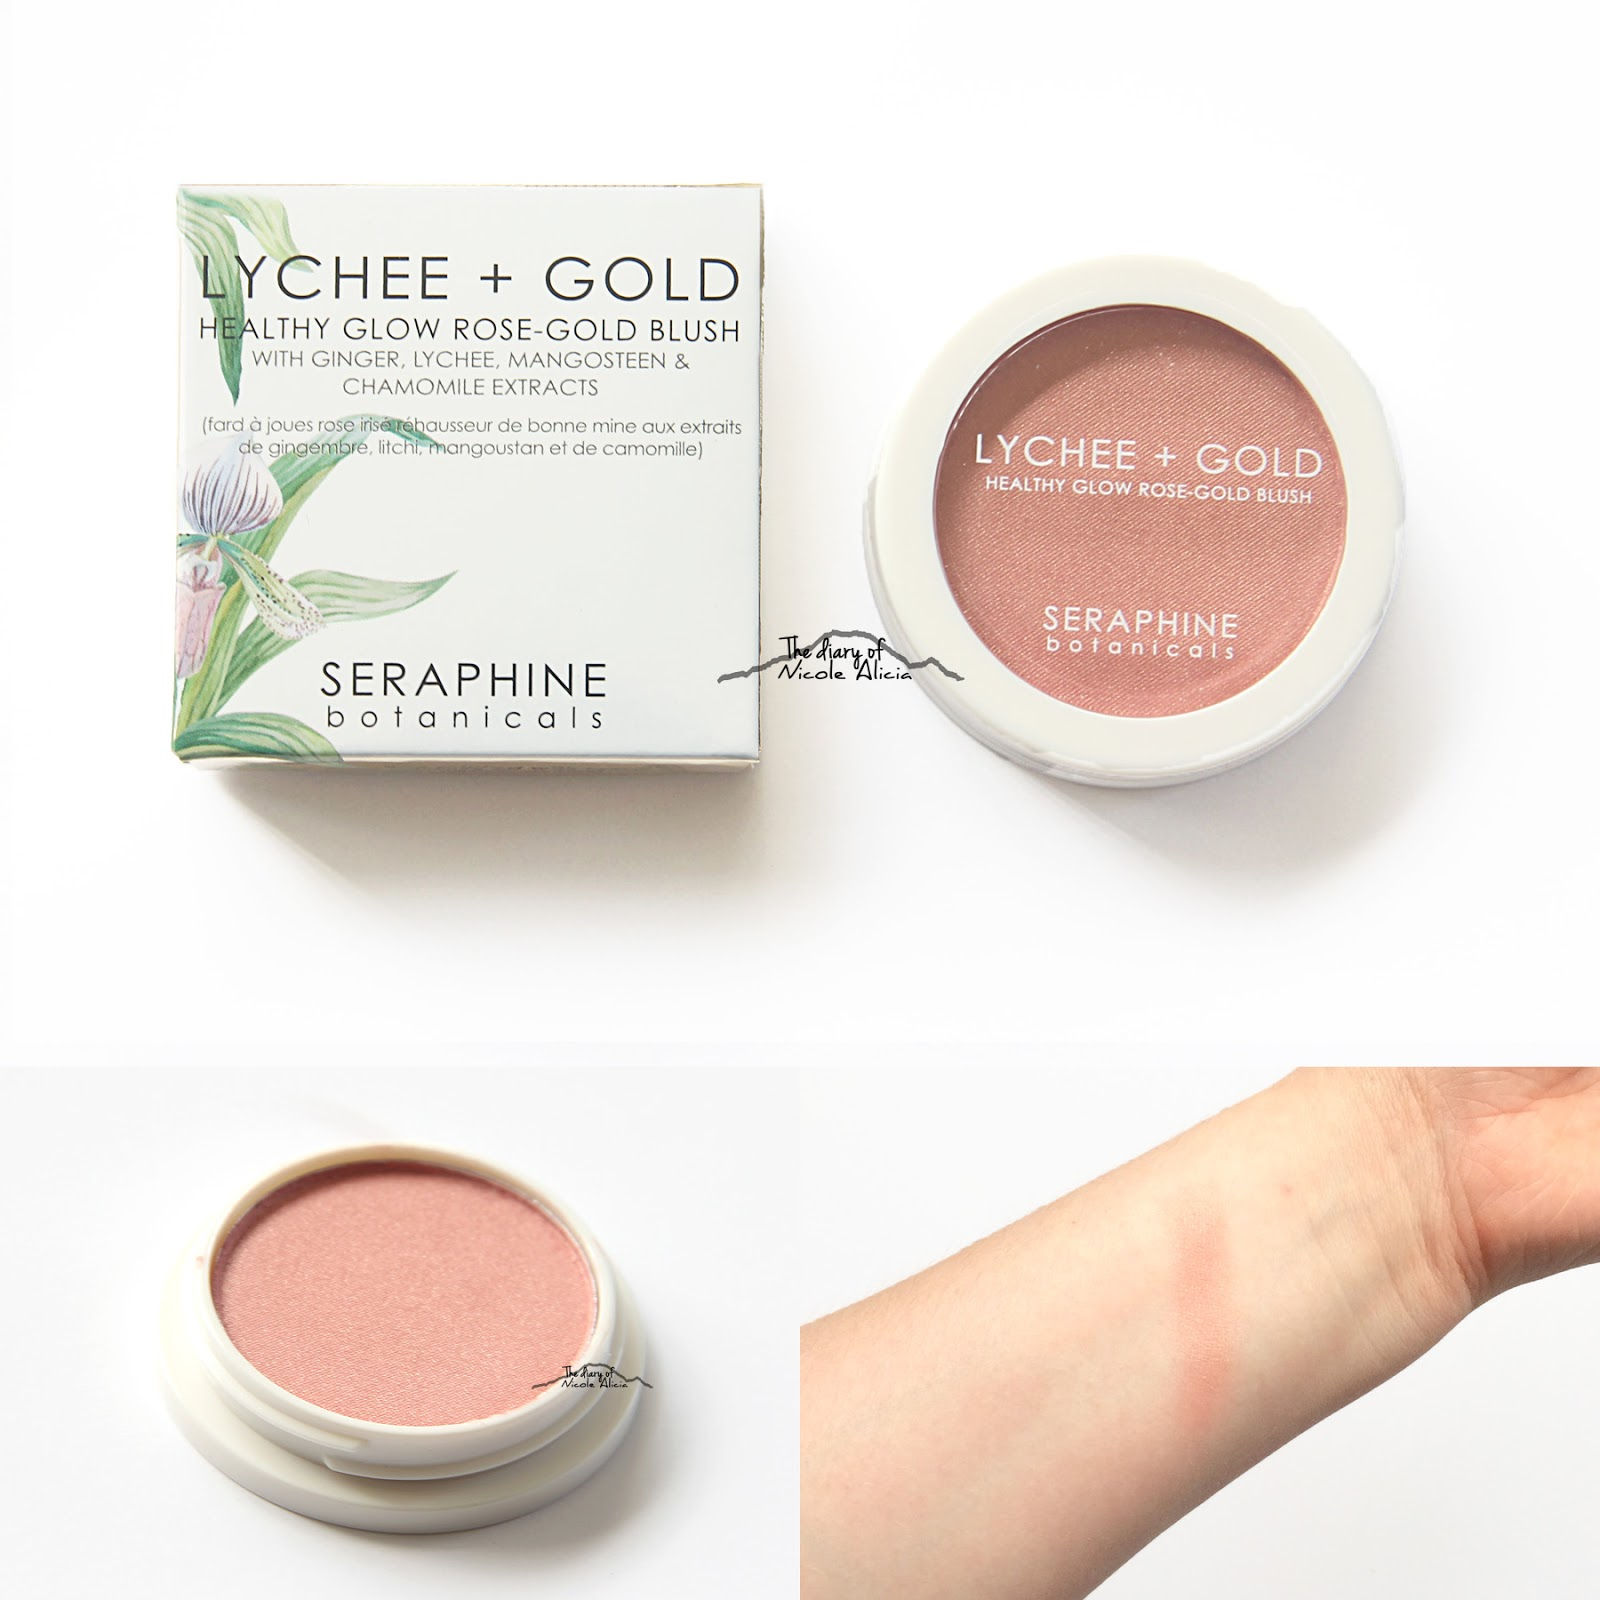 Shimmer Natural Glow Blush by Elevatione #6